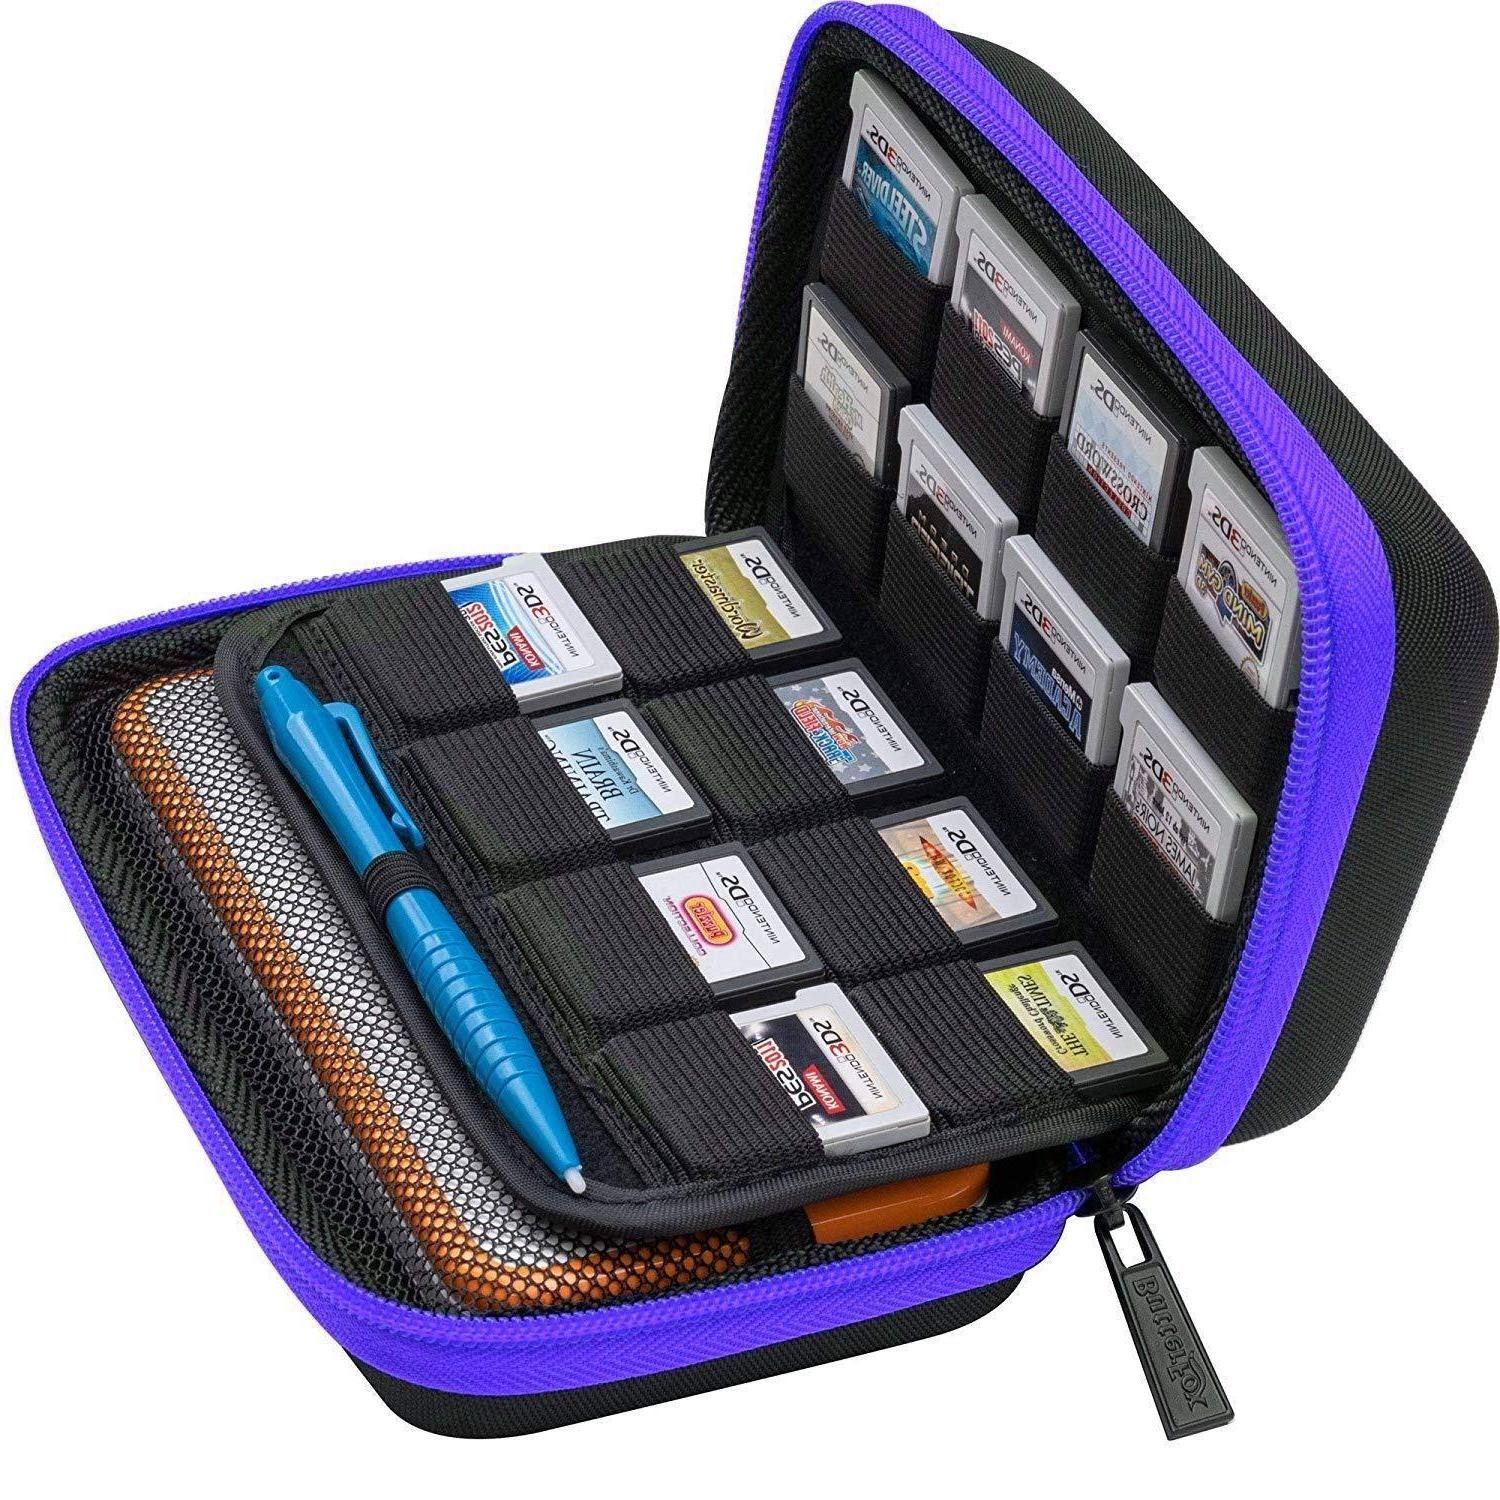 Nintendo XL/3DS Carry Case,Large Wall Card